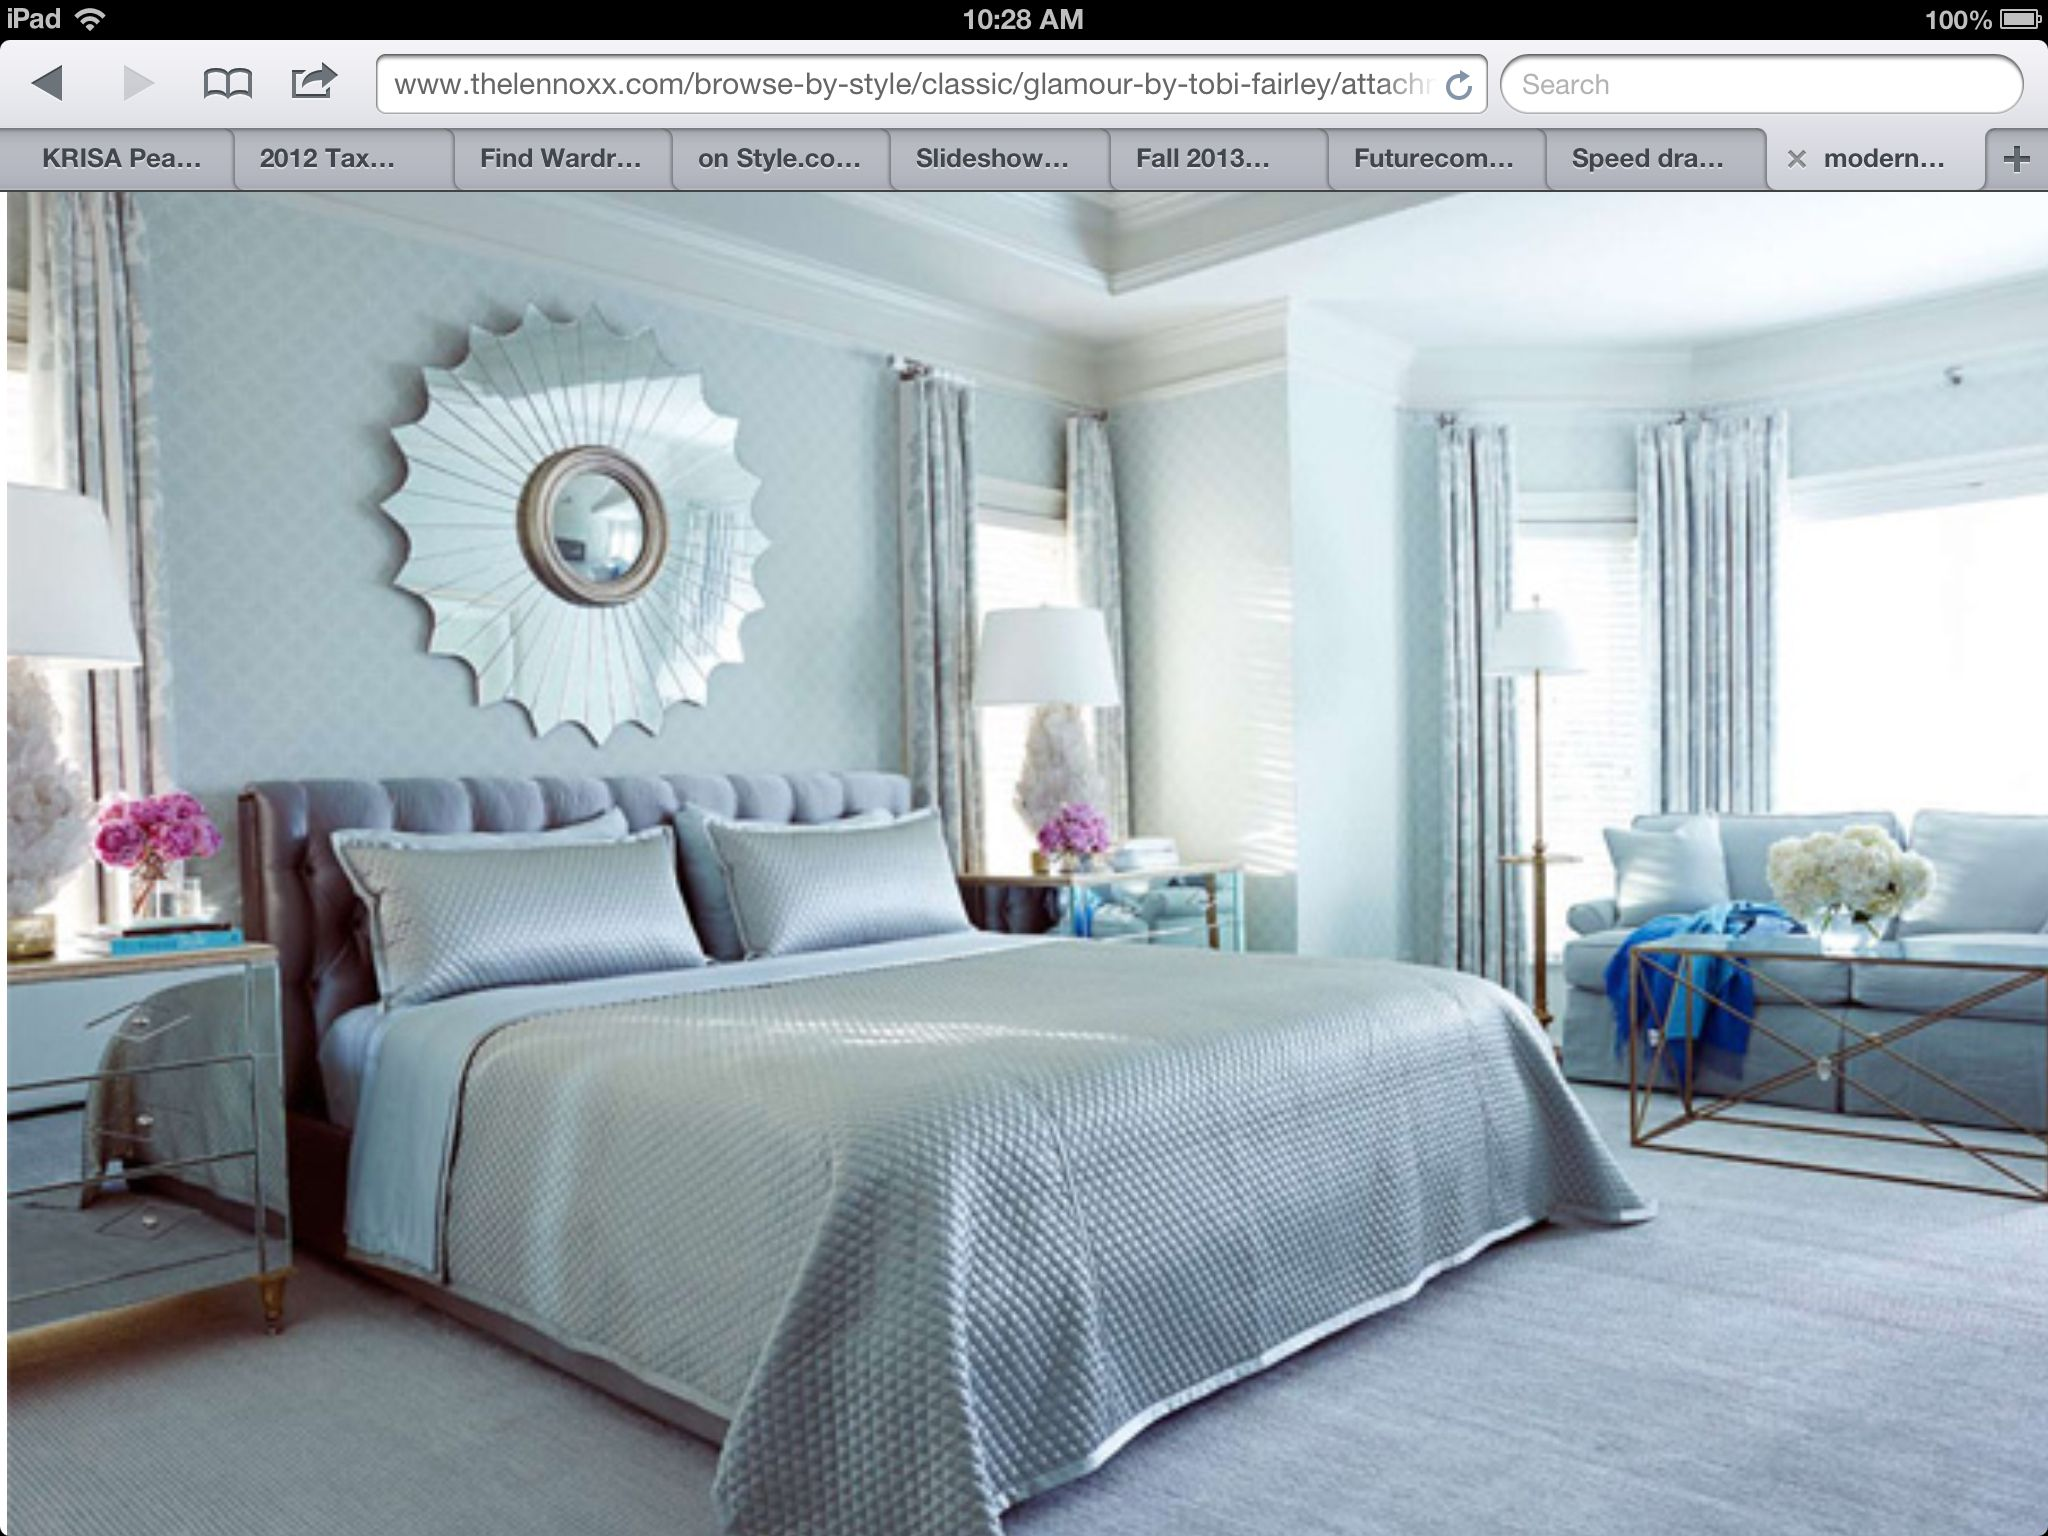 Bedroom designs for couples in blue - Modern Chic Light Blue Silver Bedroom Design Sun Mirror Crystal Lamps